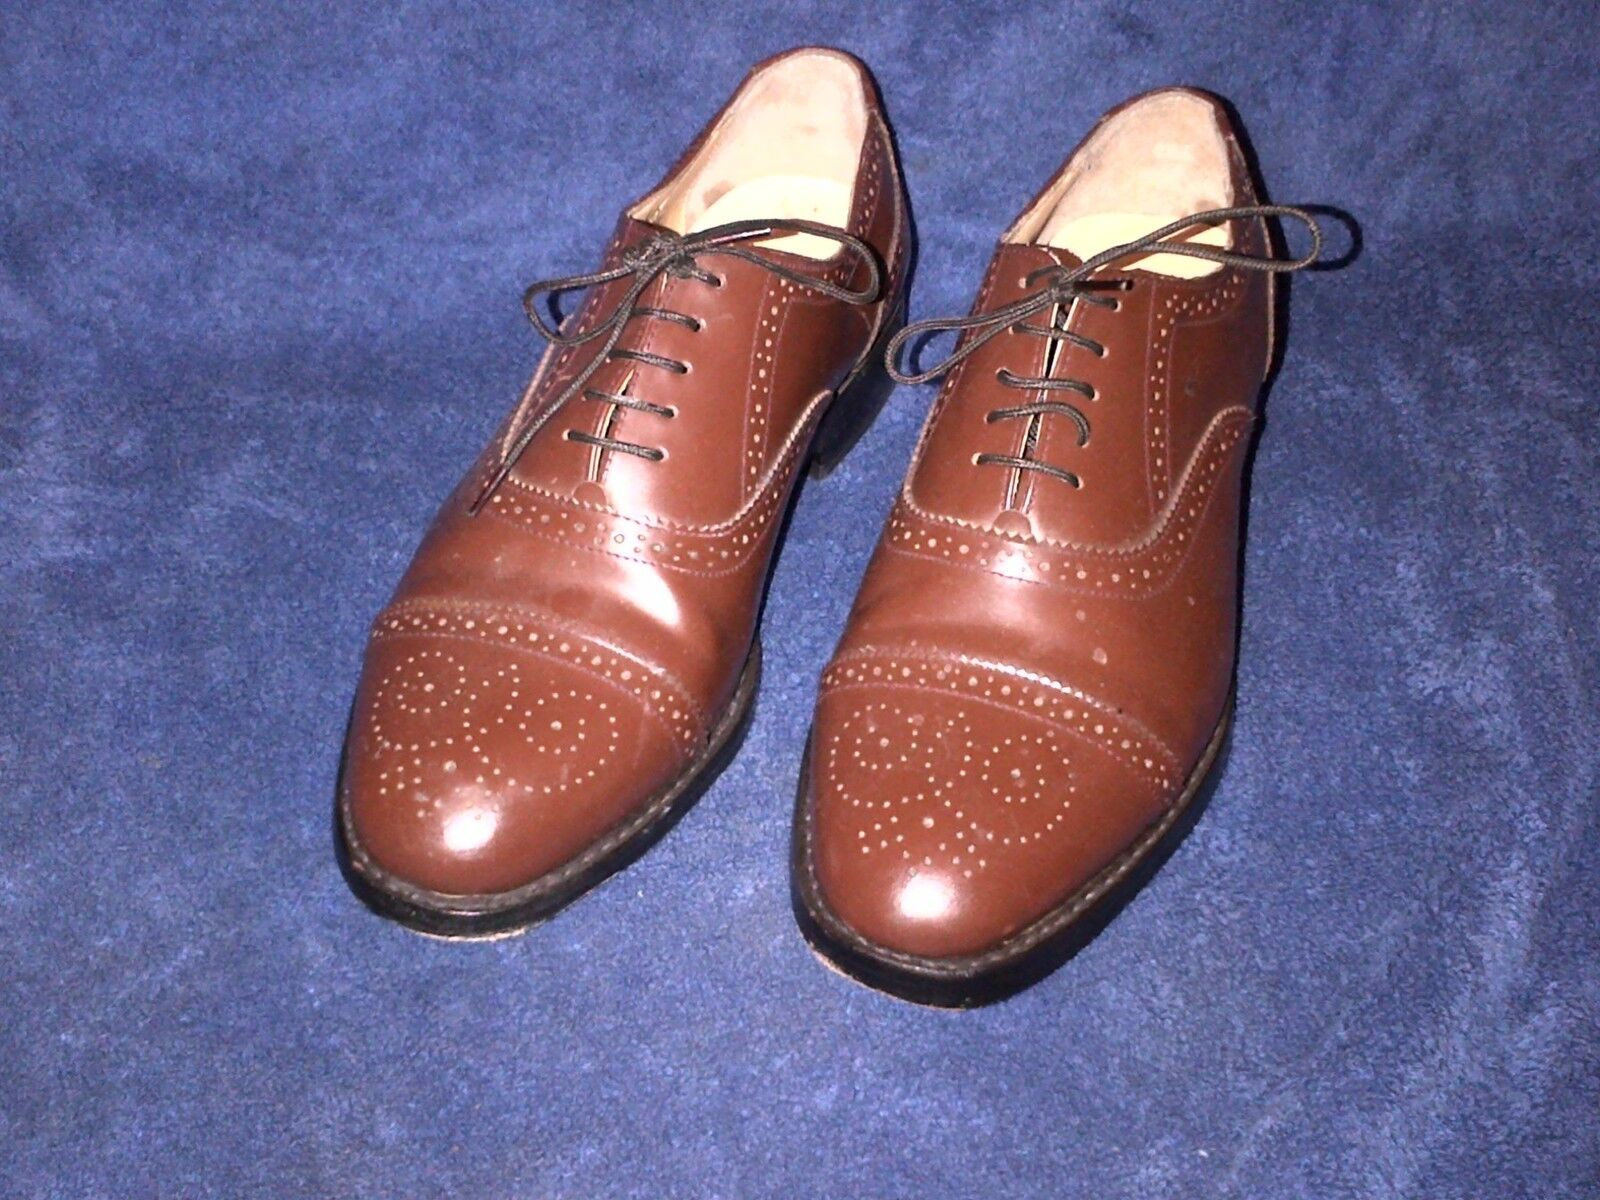 MENS SAMUEL WINDSOR HAND MADE BROWN LEATHER SHOES SIZE 8